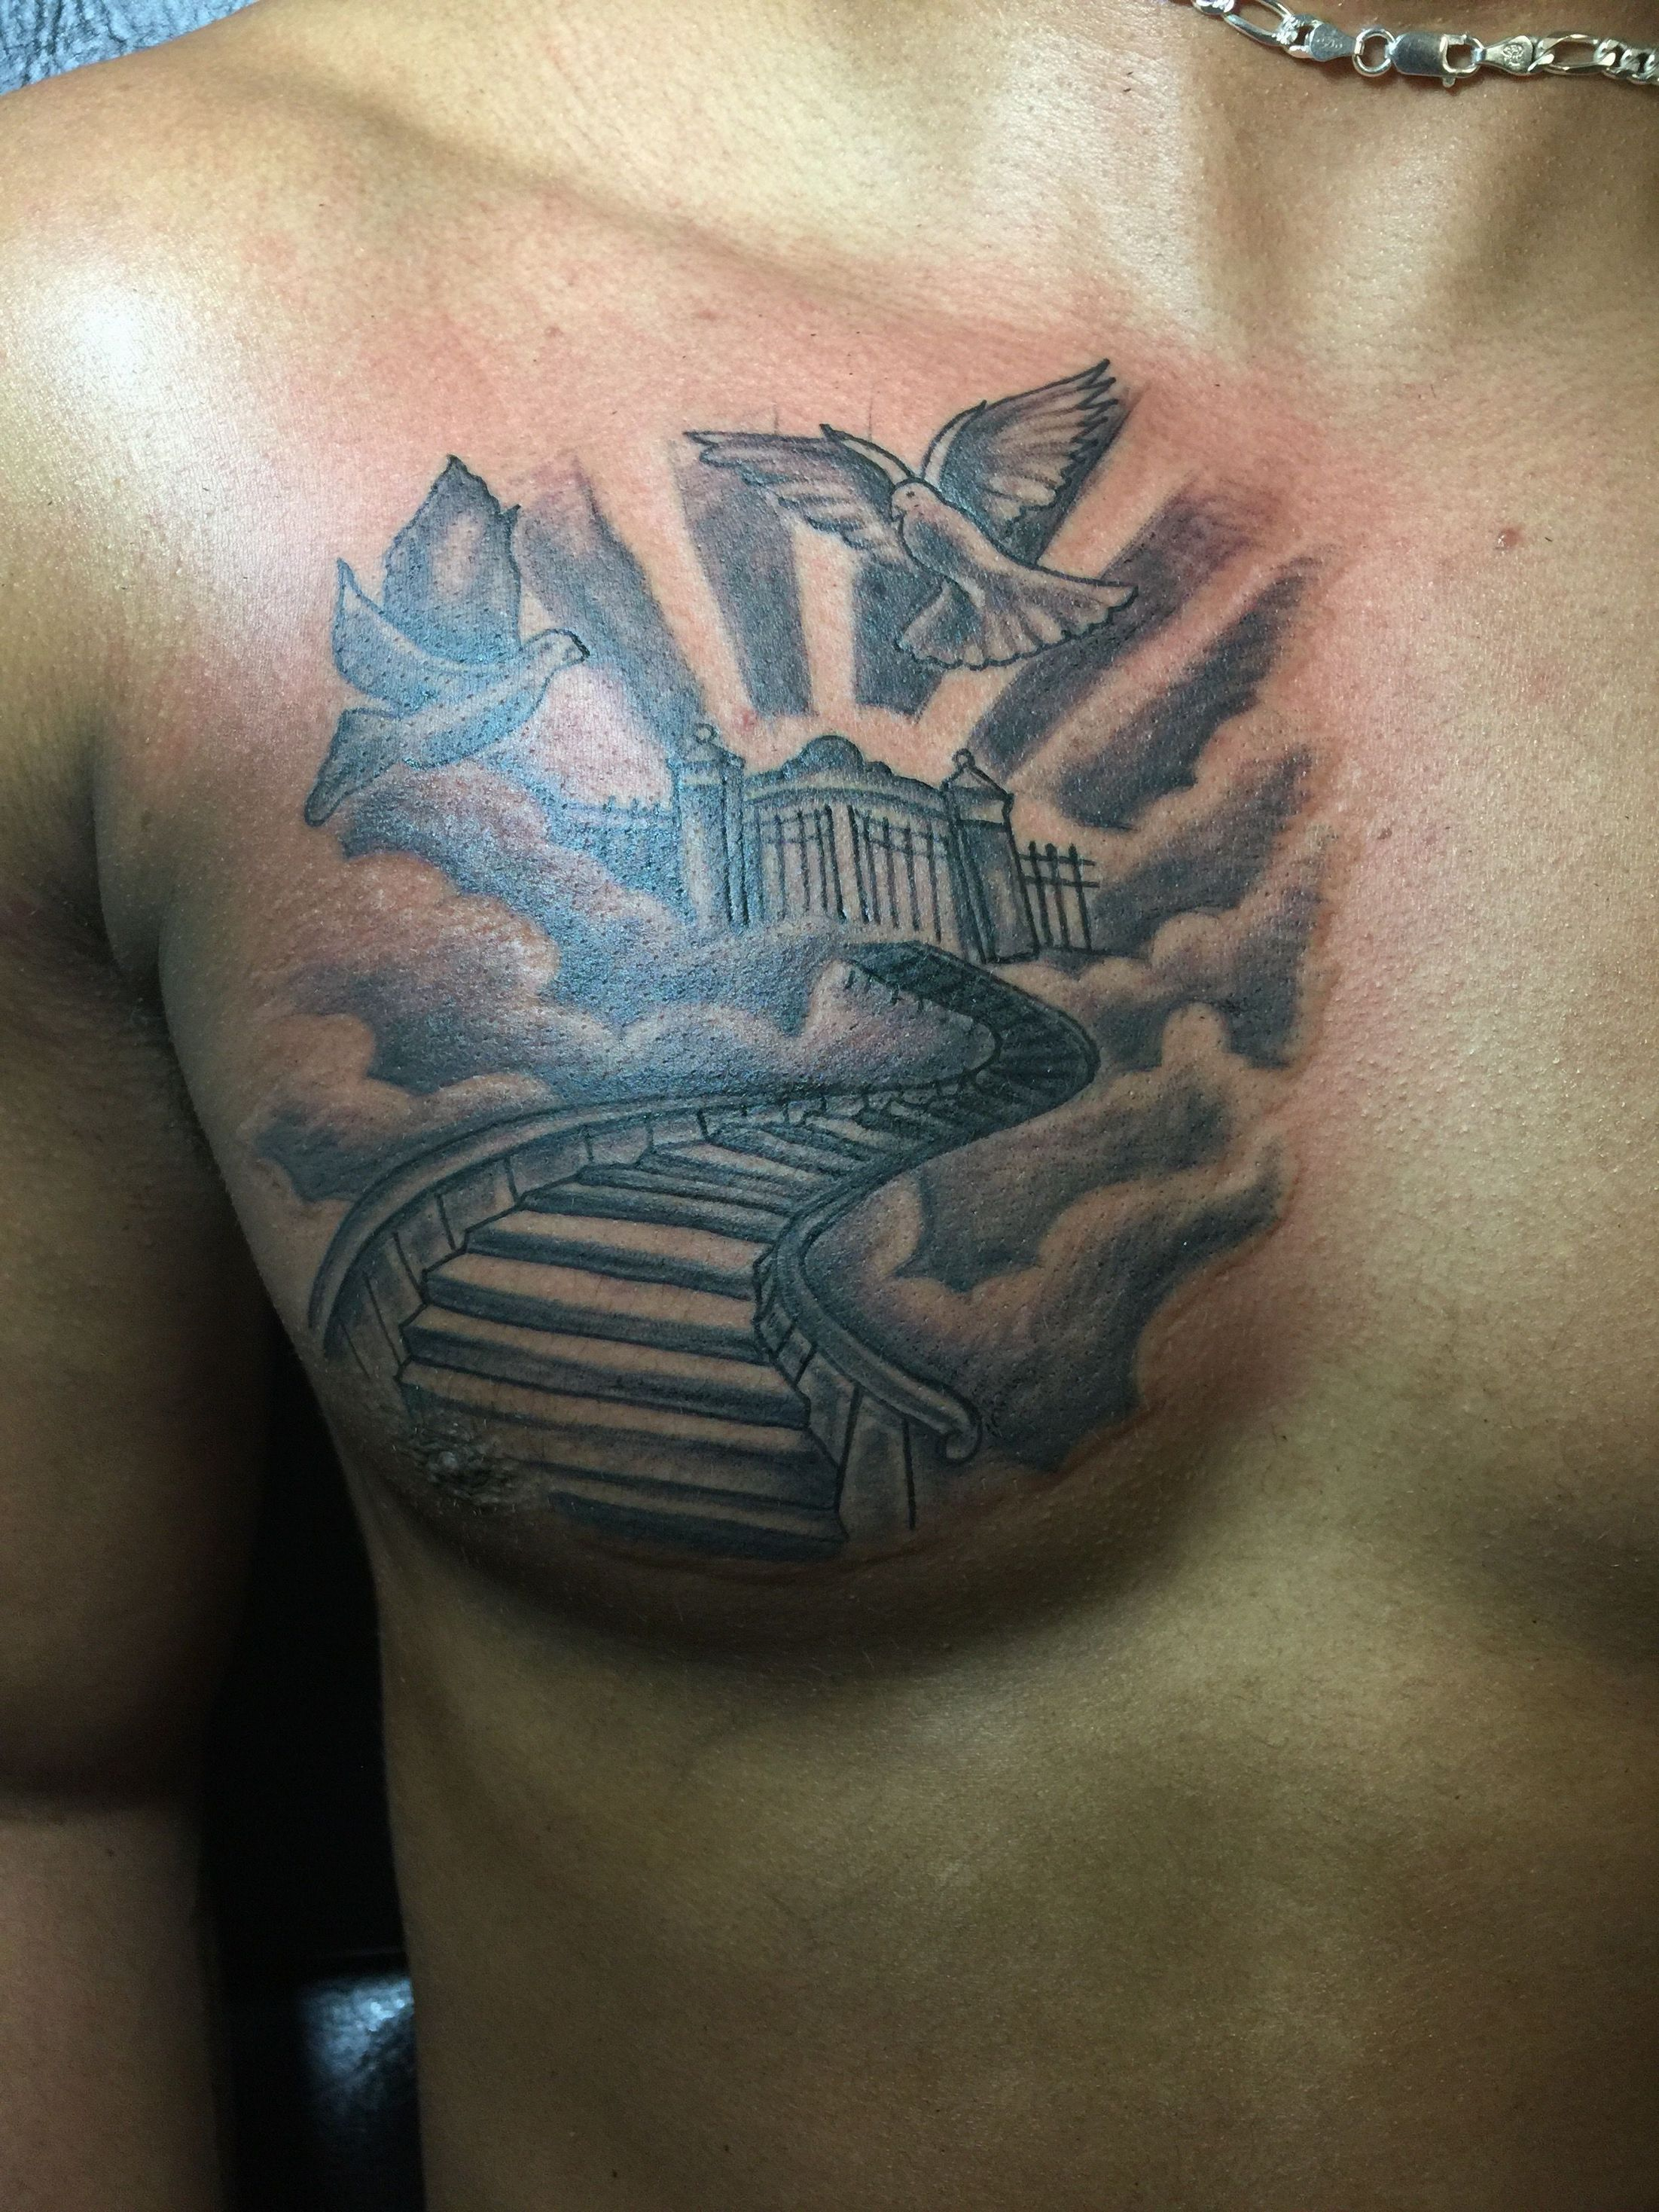 30 Coolest Chest Tattoo Men Ideas Full Inspiration For Ideas And Designs